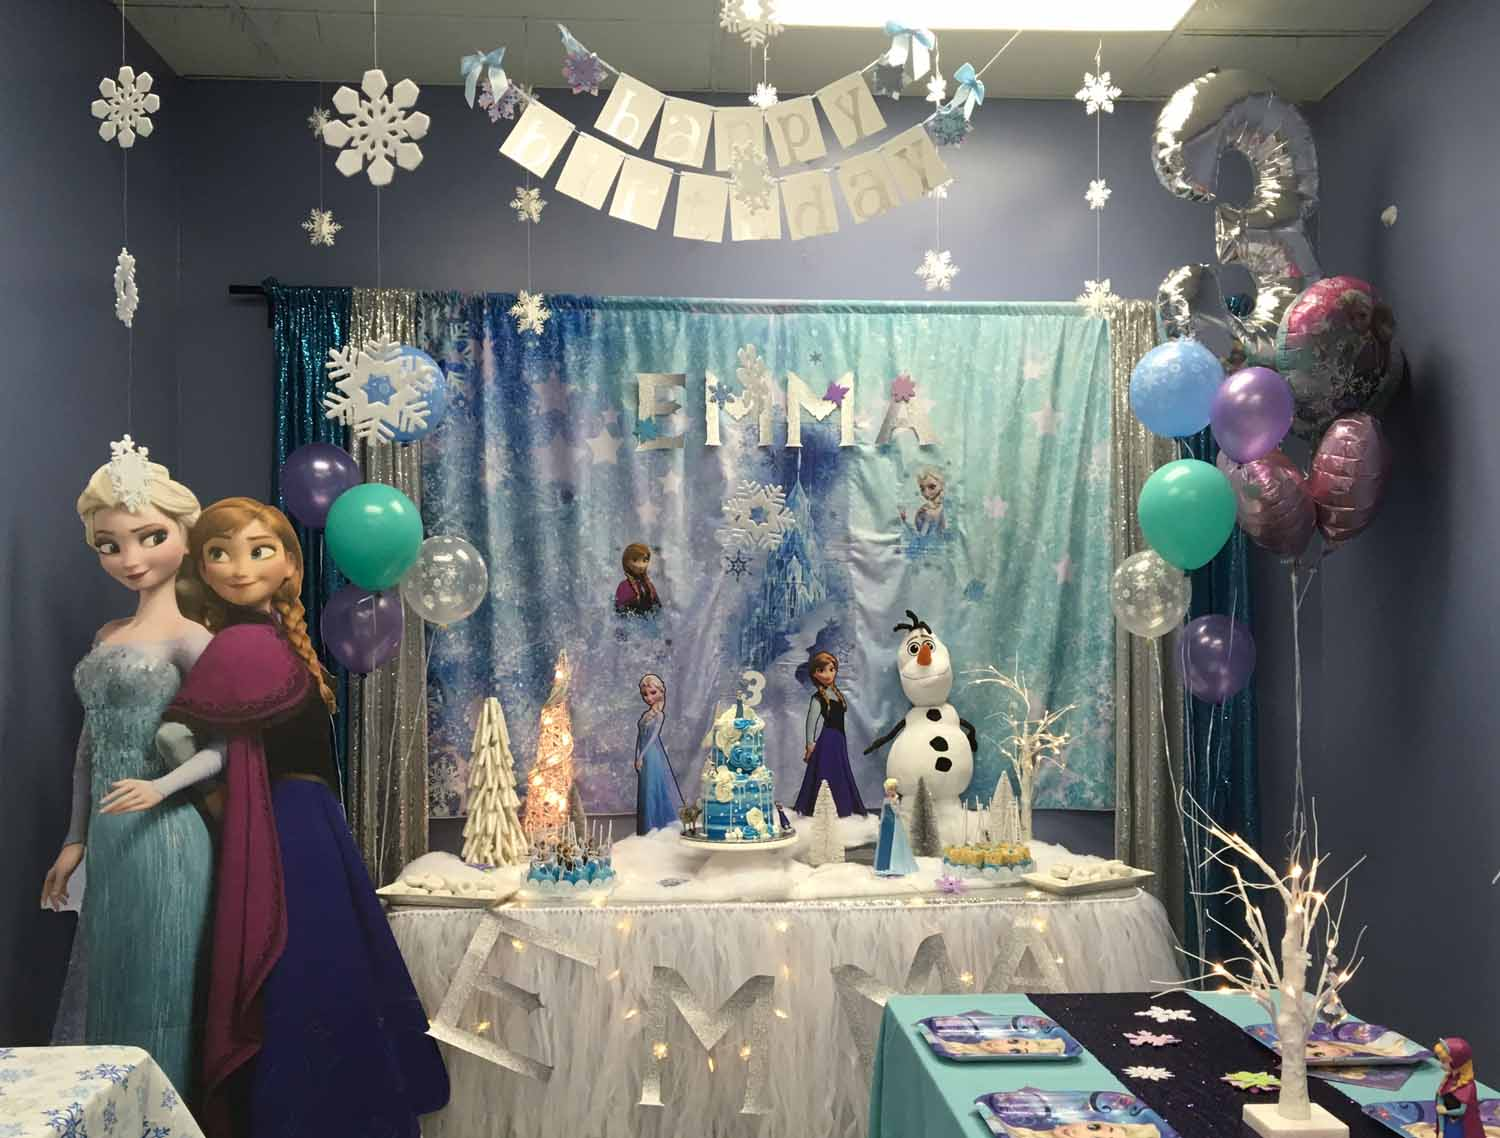 frozen themed birthday party in orlando florida - princesses and princes